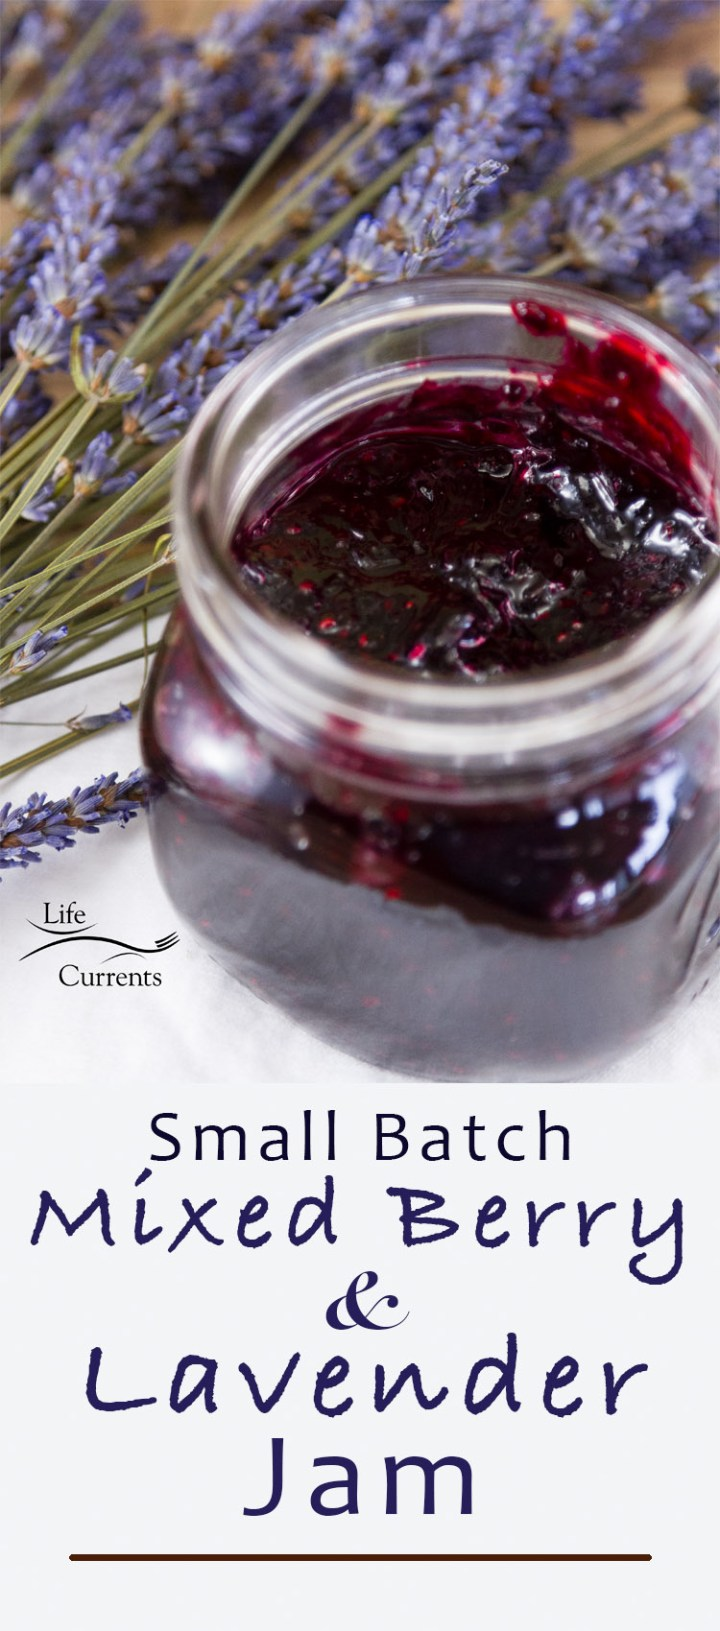 Small Batch Mixed Berry and Lavender Jam